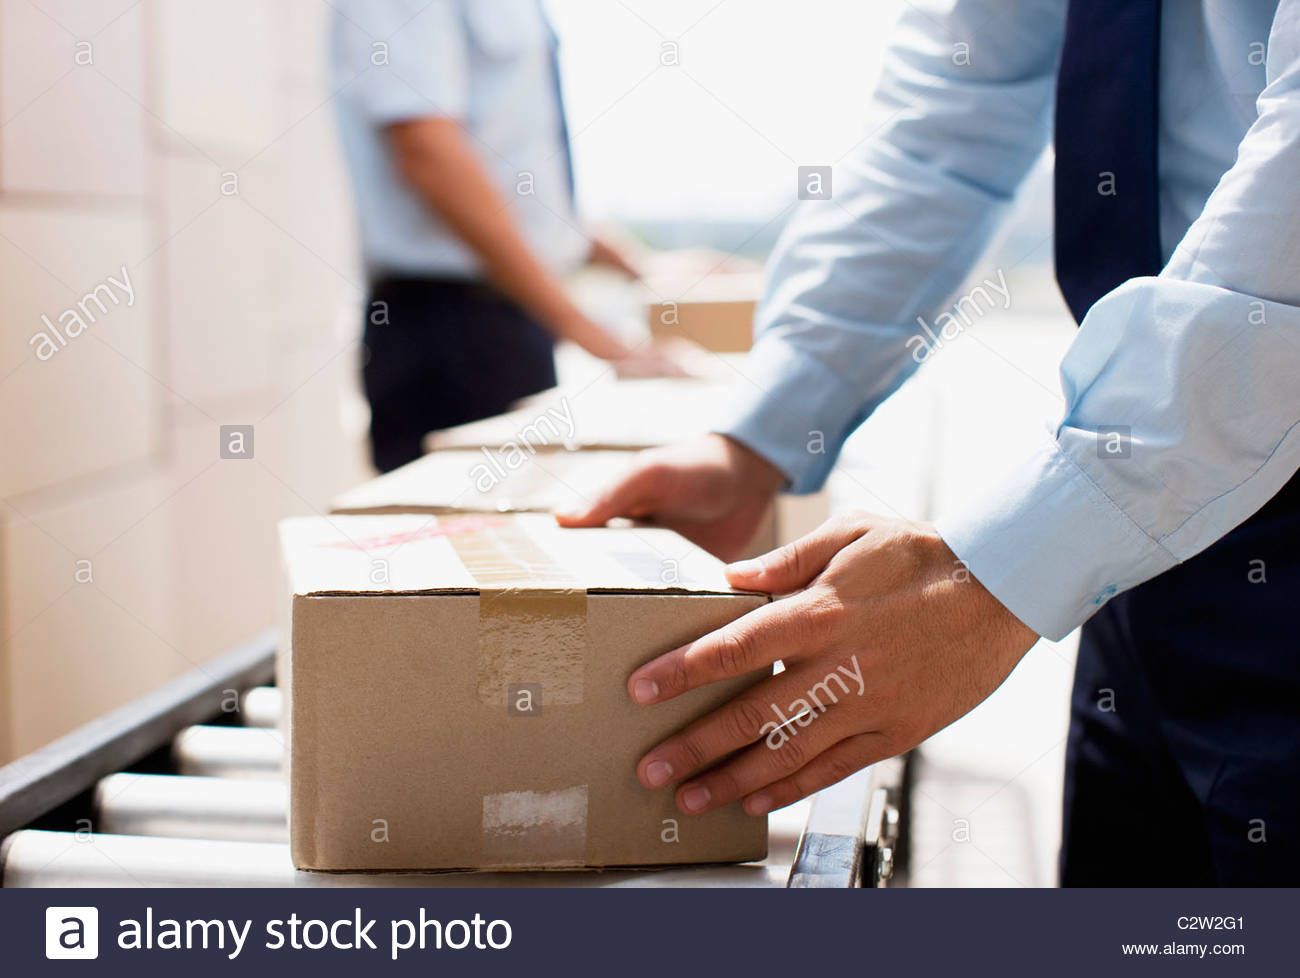 Worker taking box from conveyor belt in shipping area - Stock Image